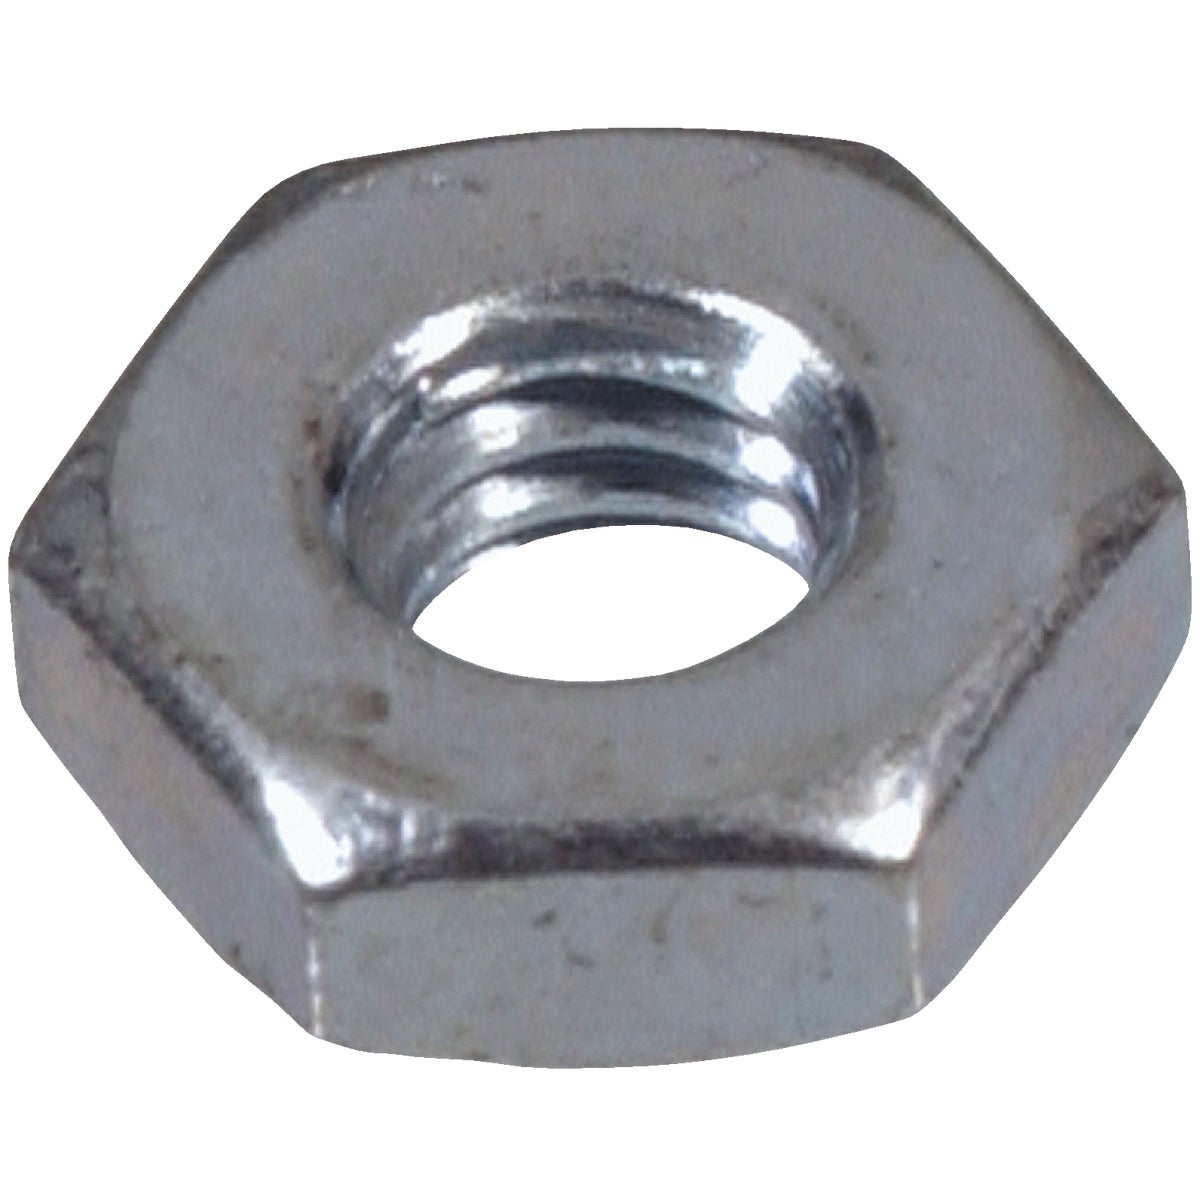 12-24 HEX MACH SCREW NUT